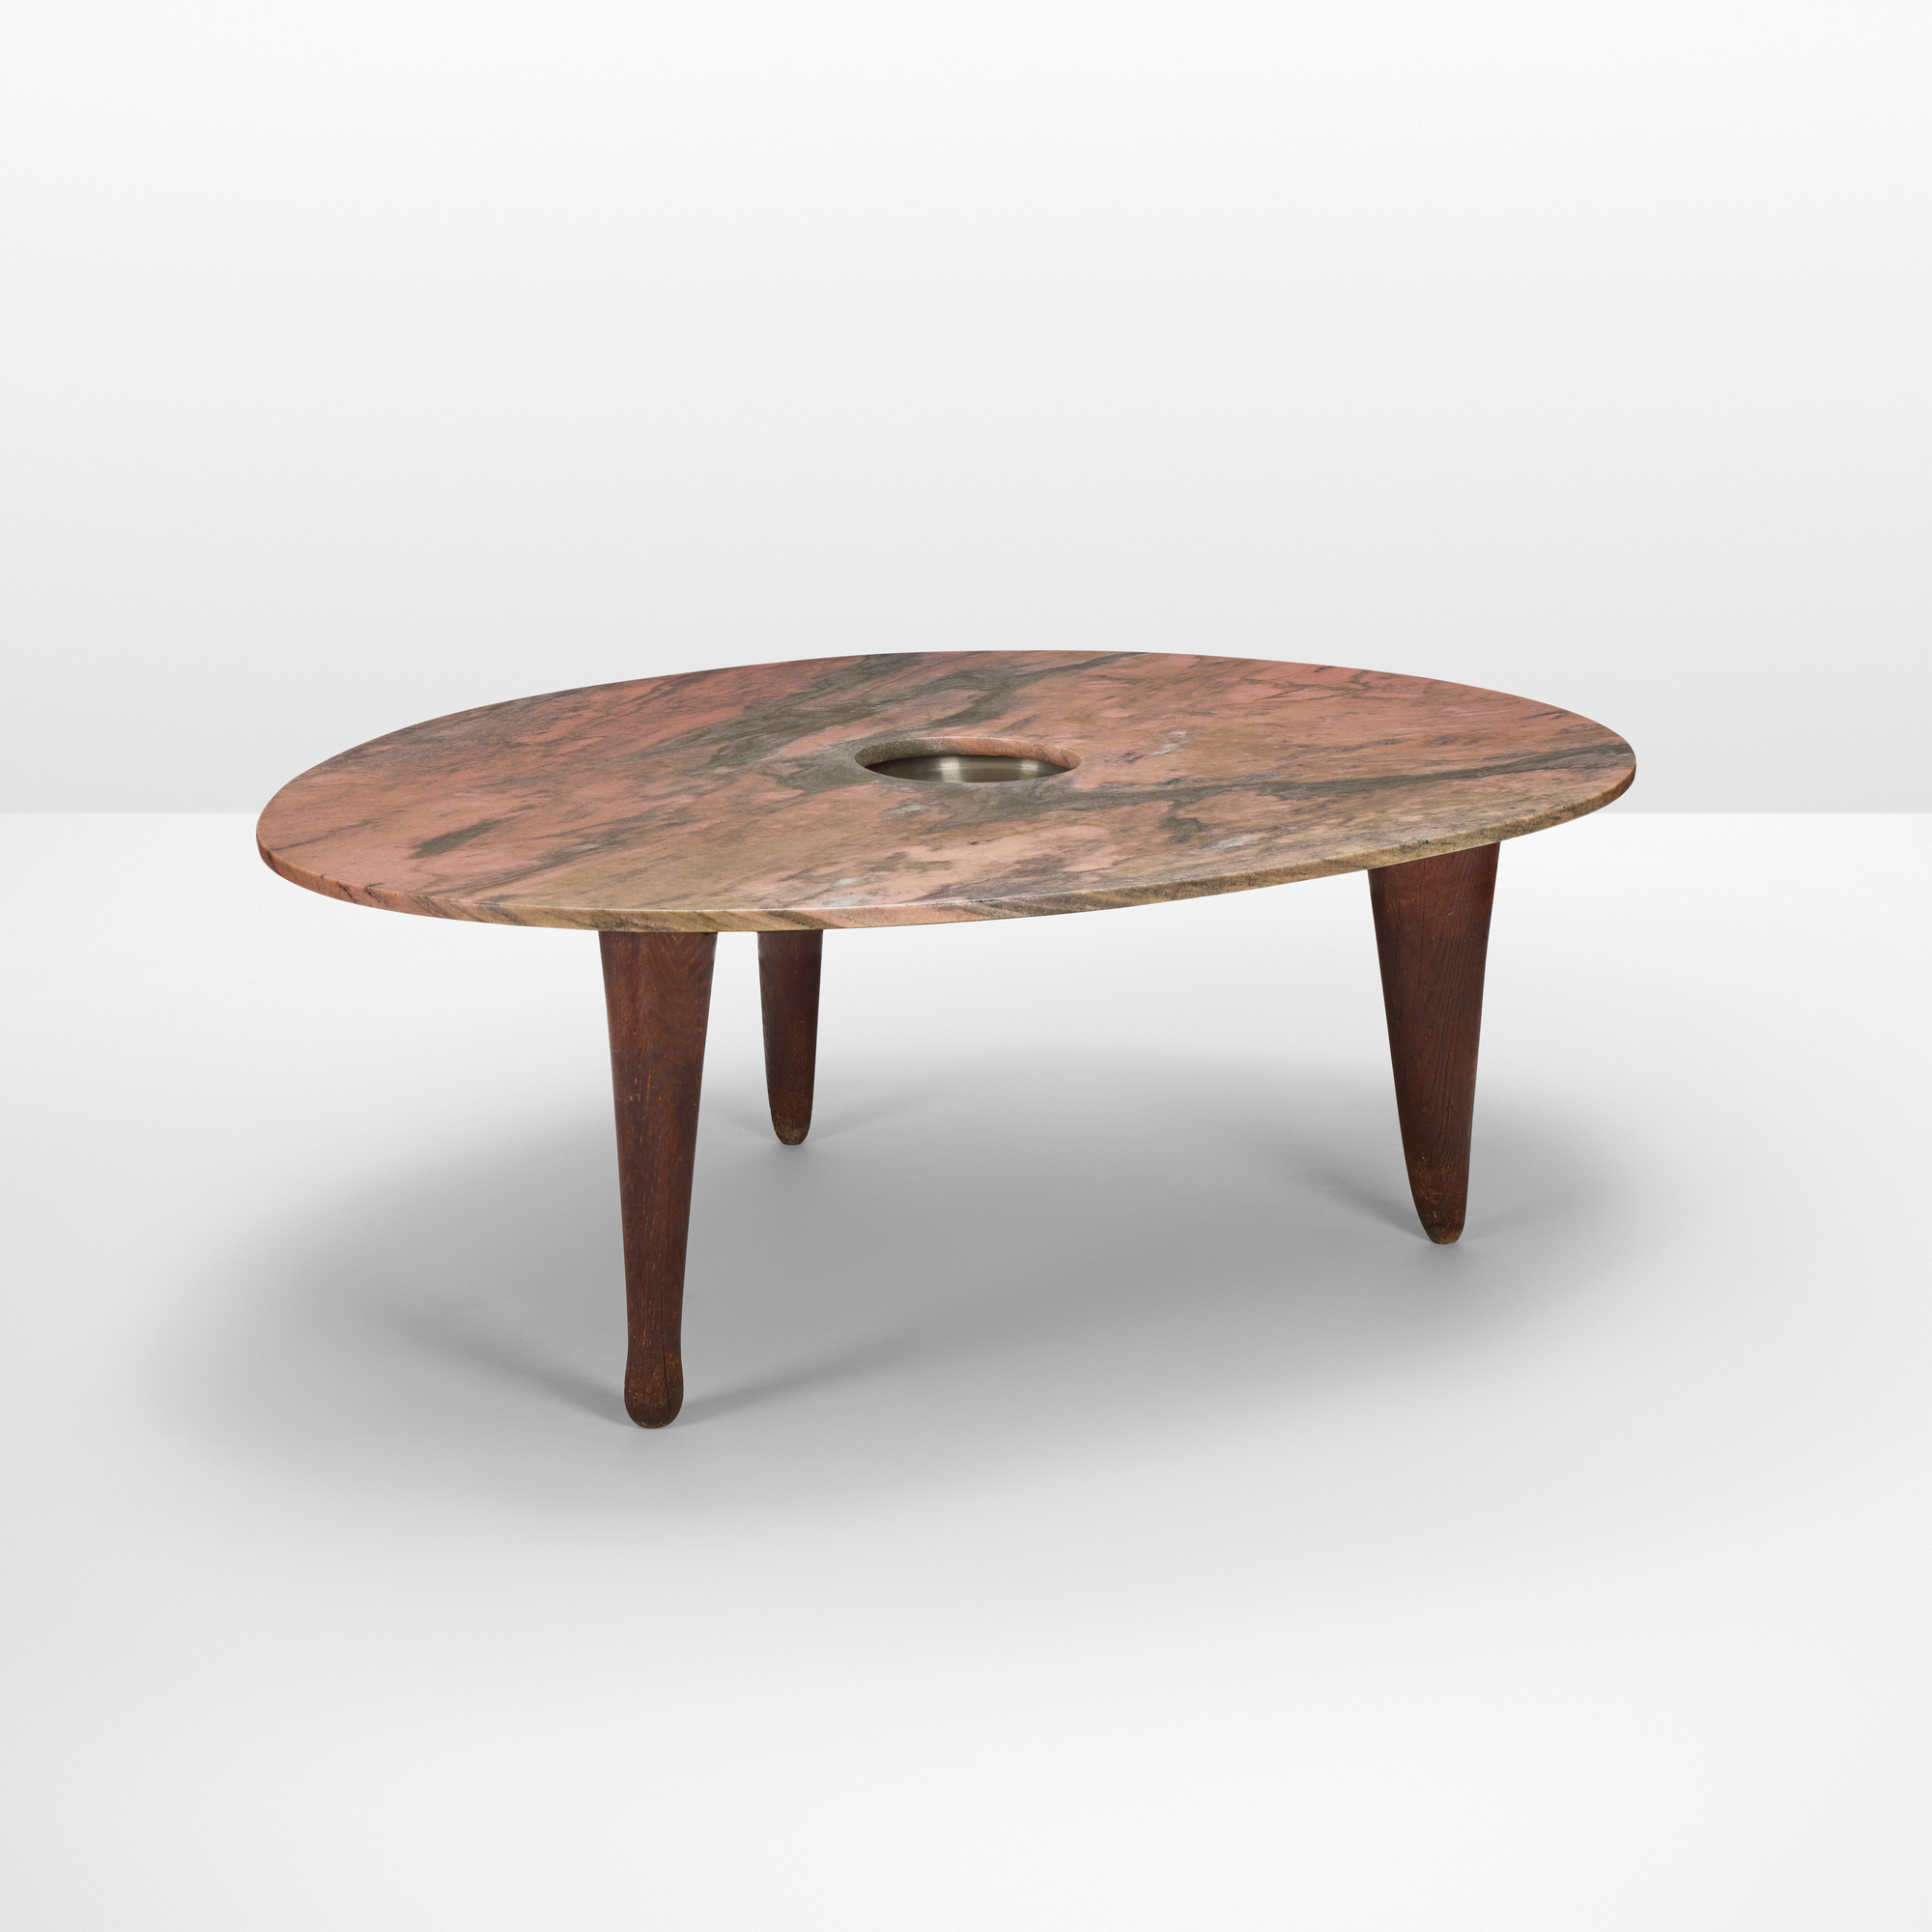 A unique pink marble dining room table designed by Isamu Noguchi for Mr. and Mrs. Milton Greene.